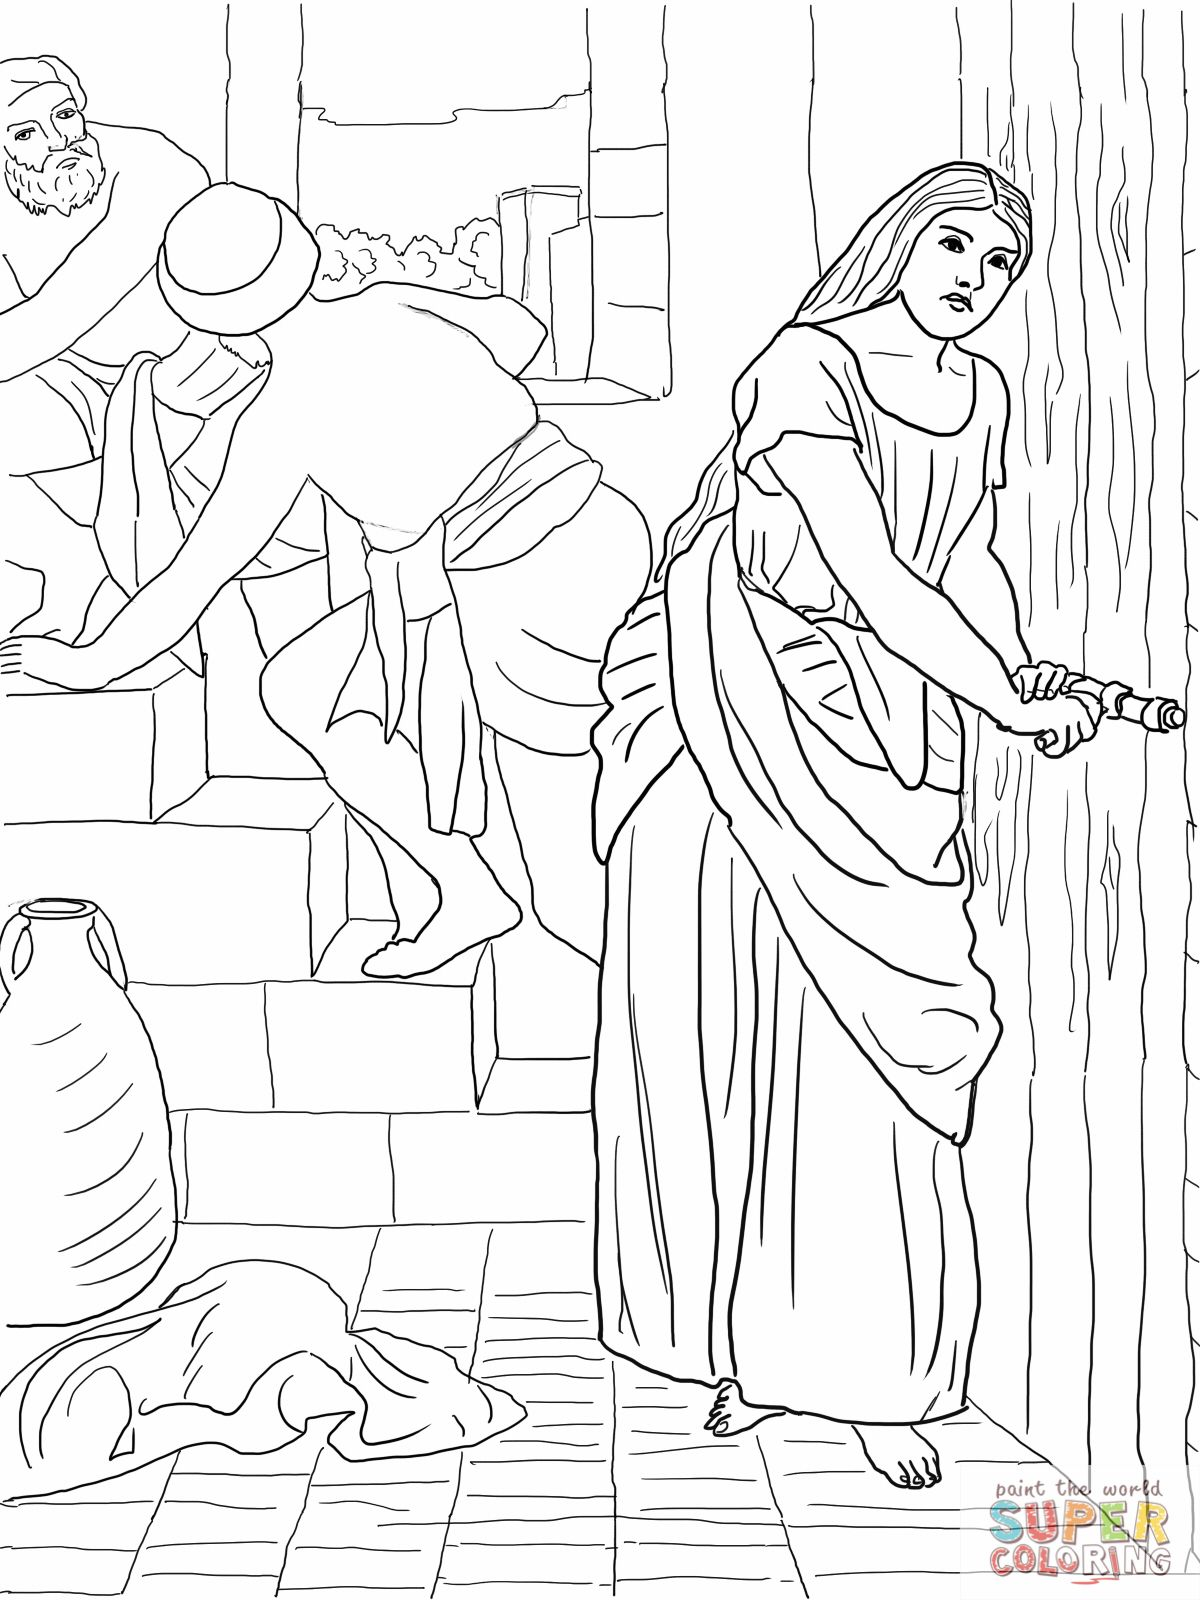 rahab coloring pages rahab and the spies coloring page coloring home rahab coloring pages